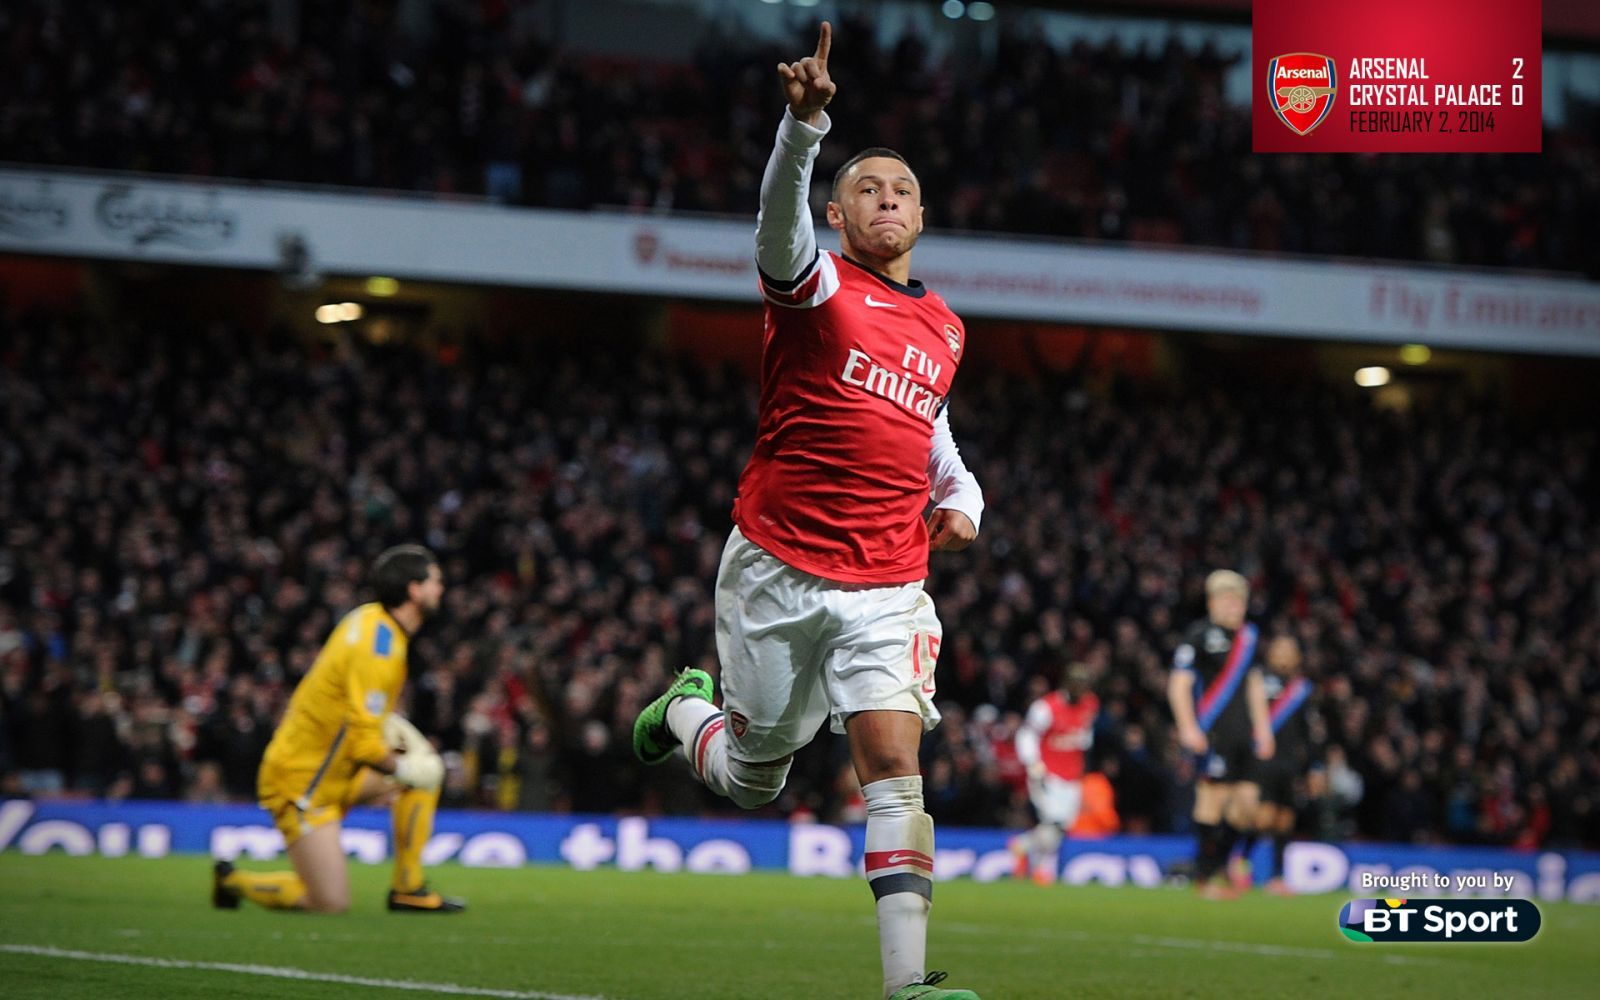 February 2, 2014 - Arsenal 2-0 Crystal Palace